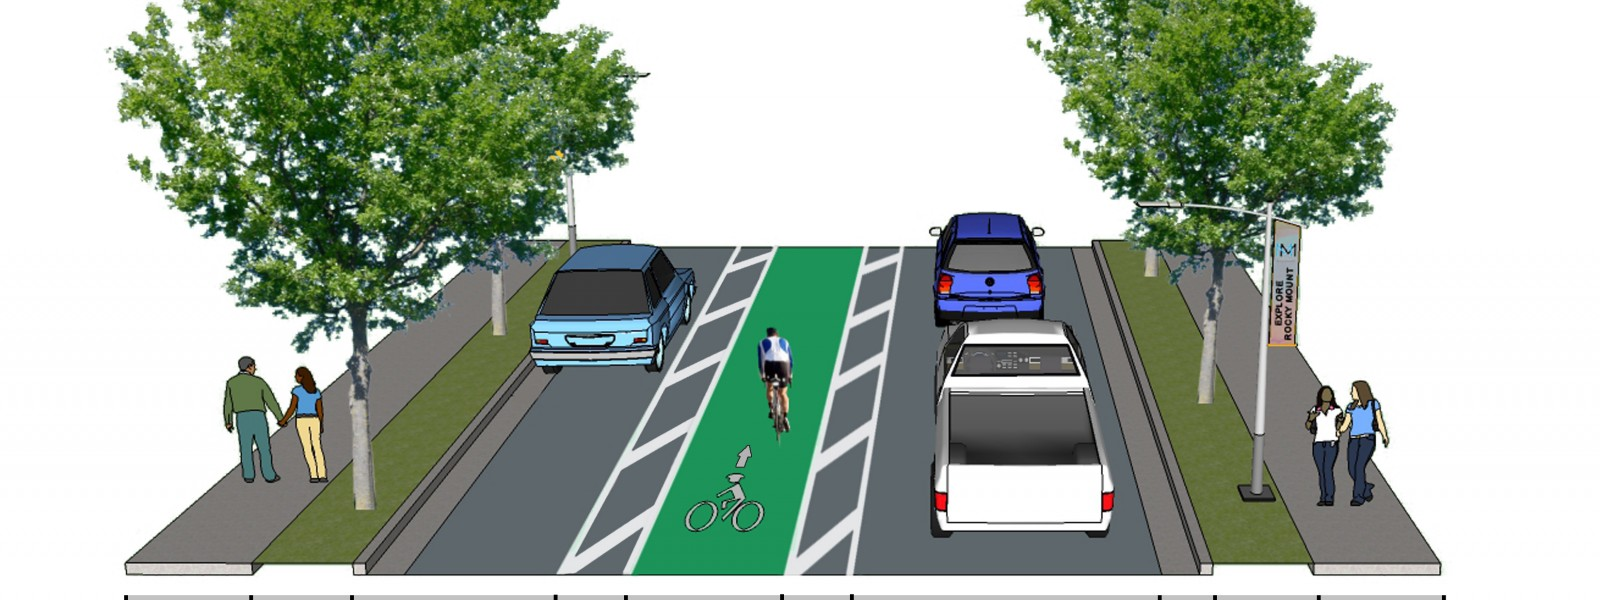 Rocky Mount Complete Streets Plan